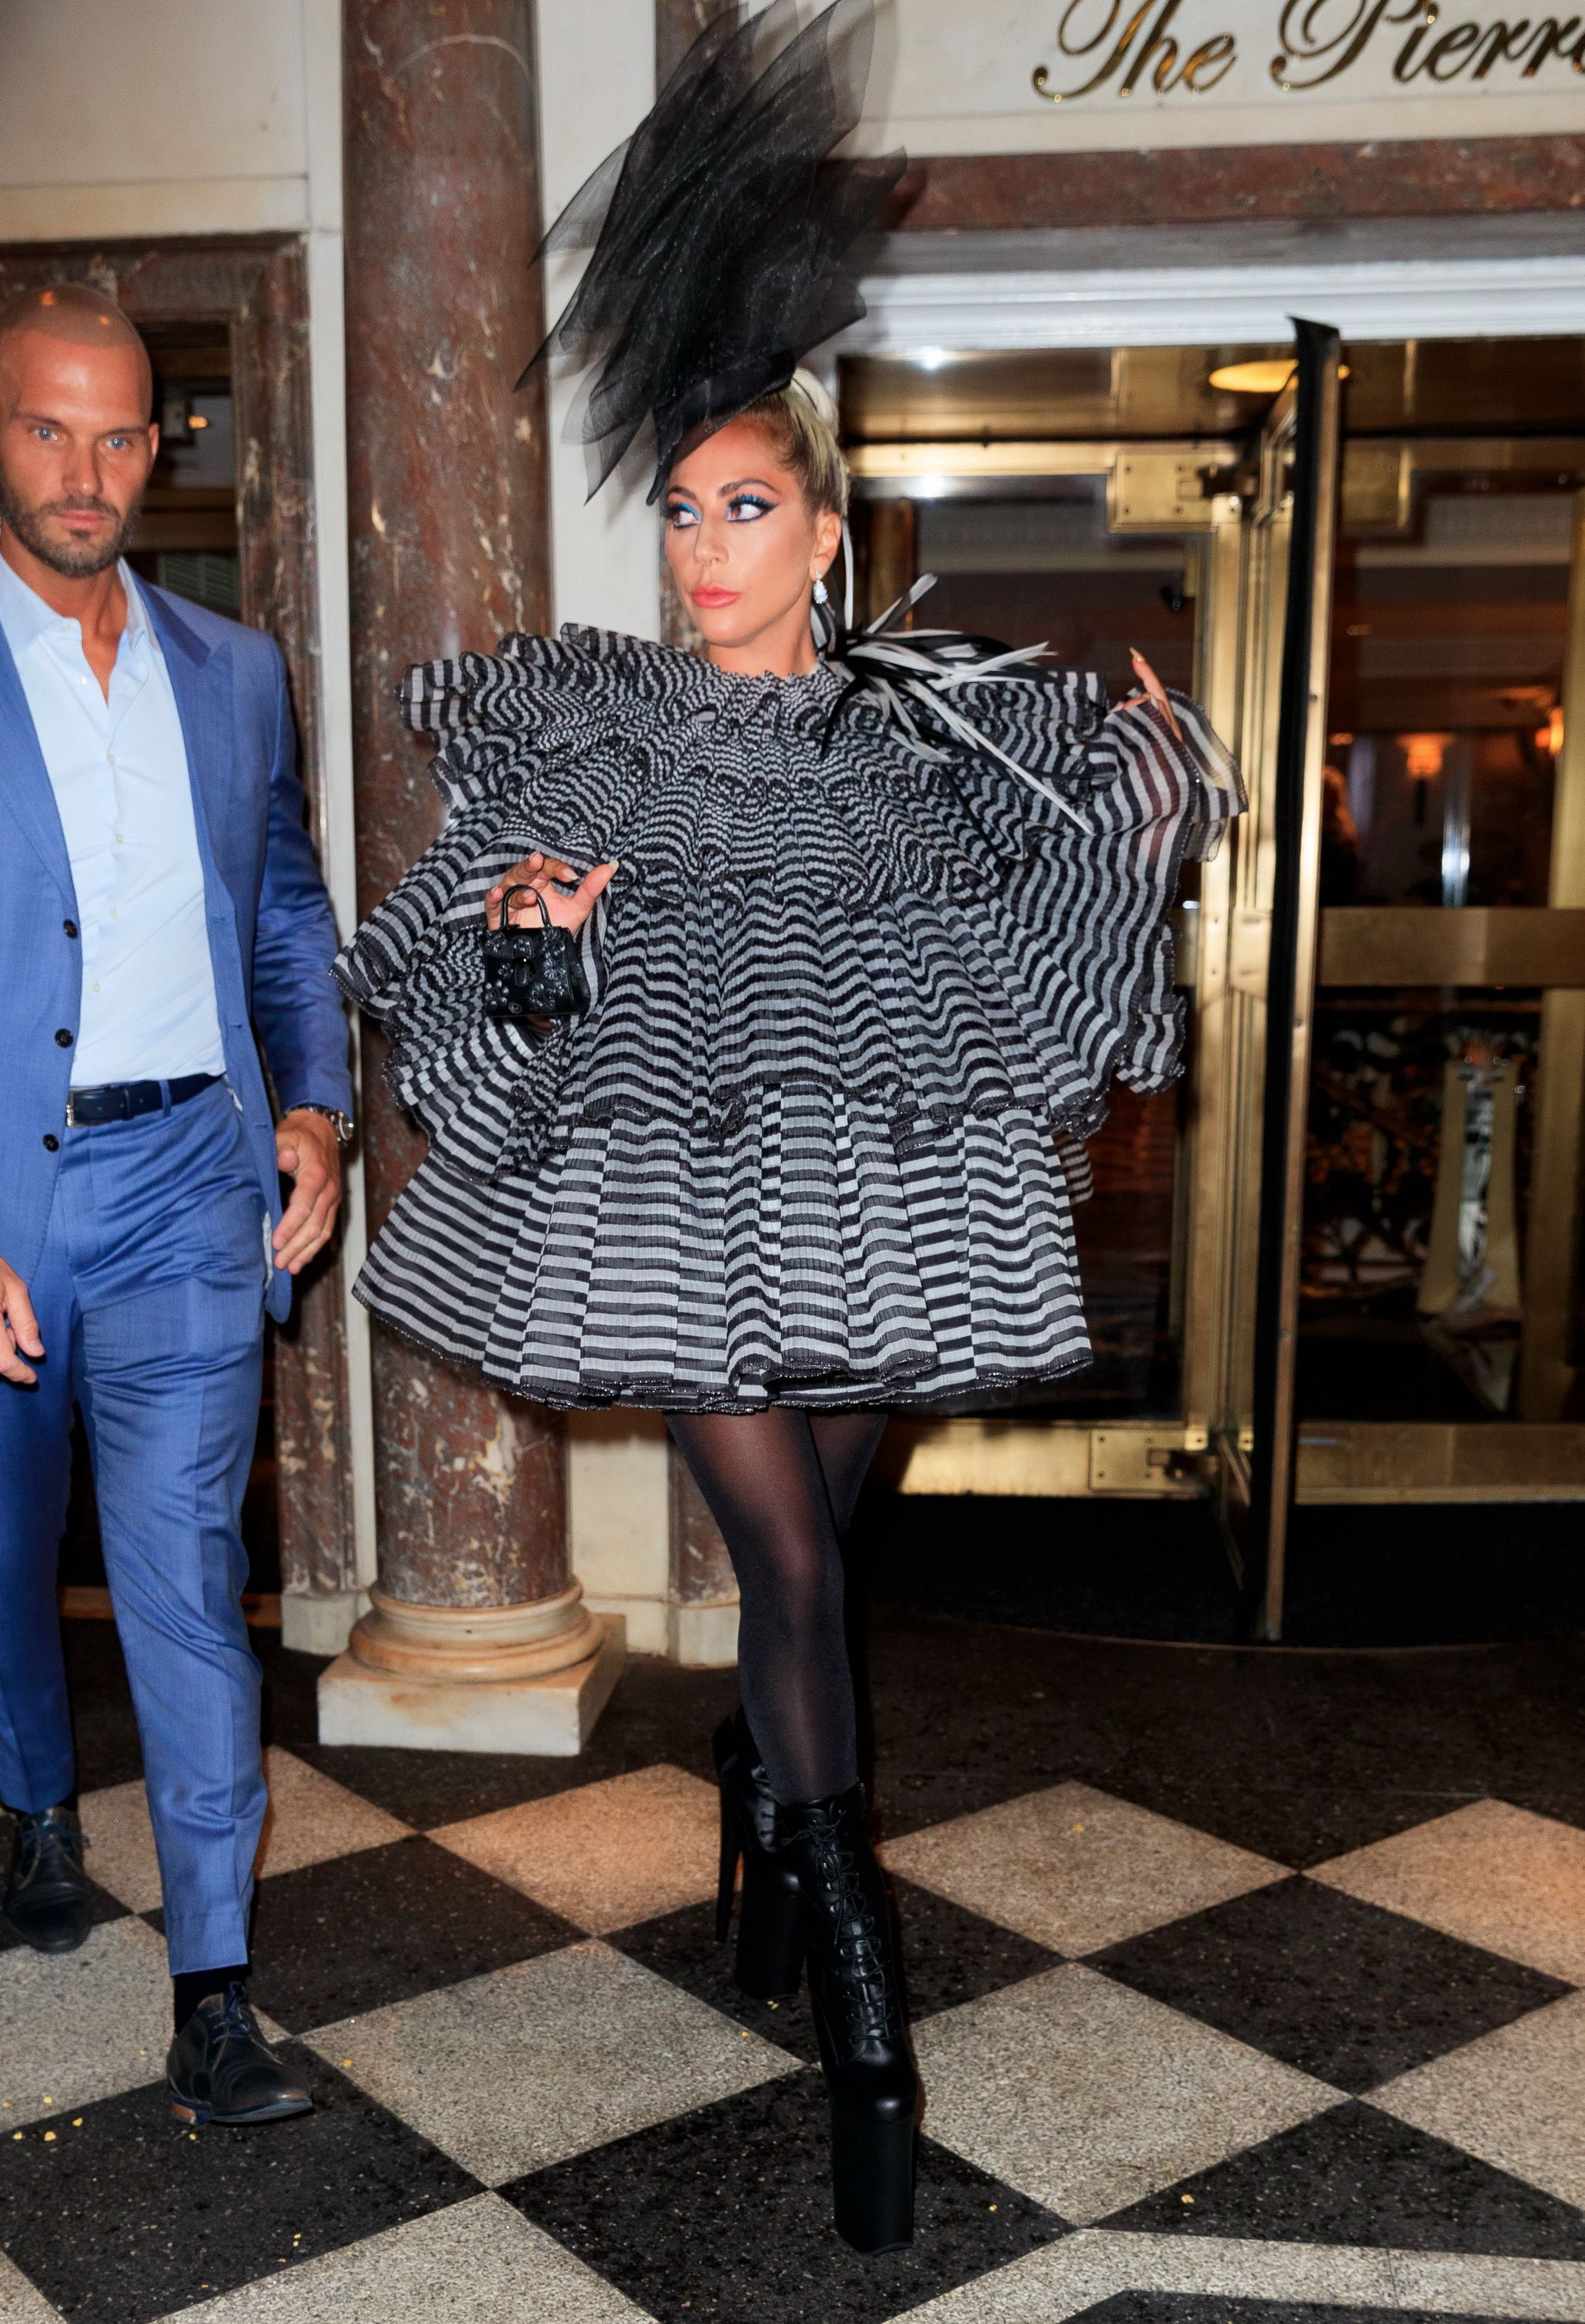 Lady Gaga - Σελίδα 45 Lady-gaga-heads-out-to-anna-wintours-pre-met-gala-dinner-on-news-photo-1141597824-1557157359